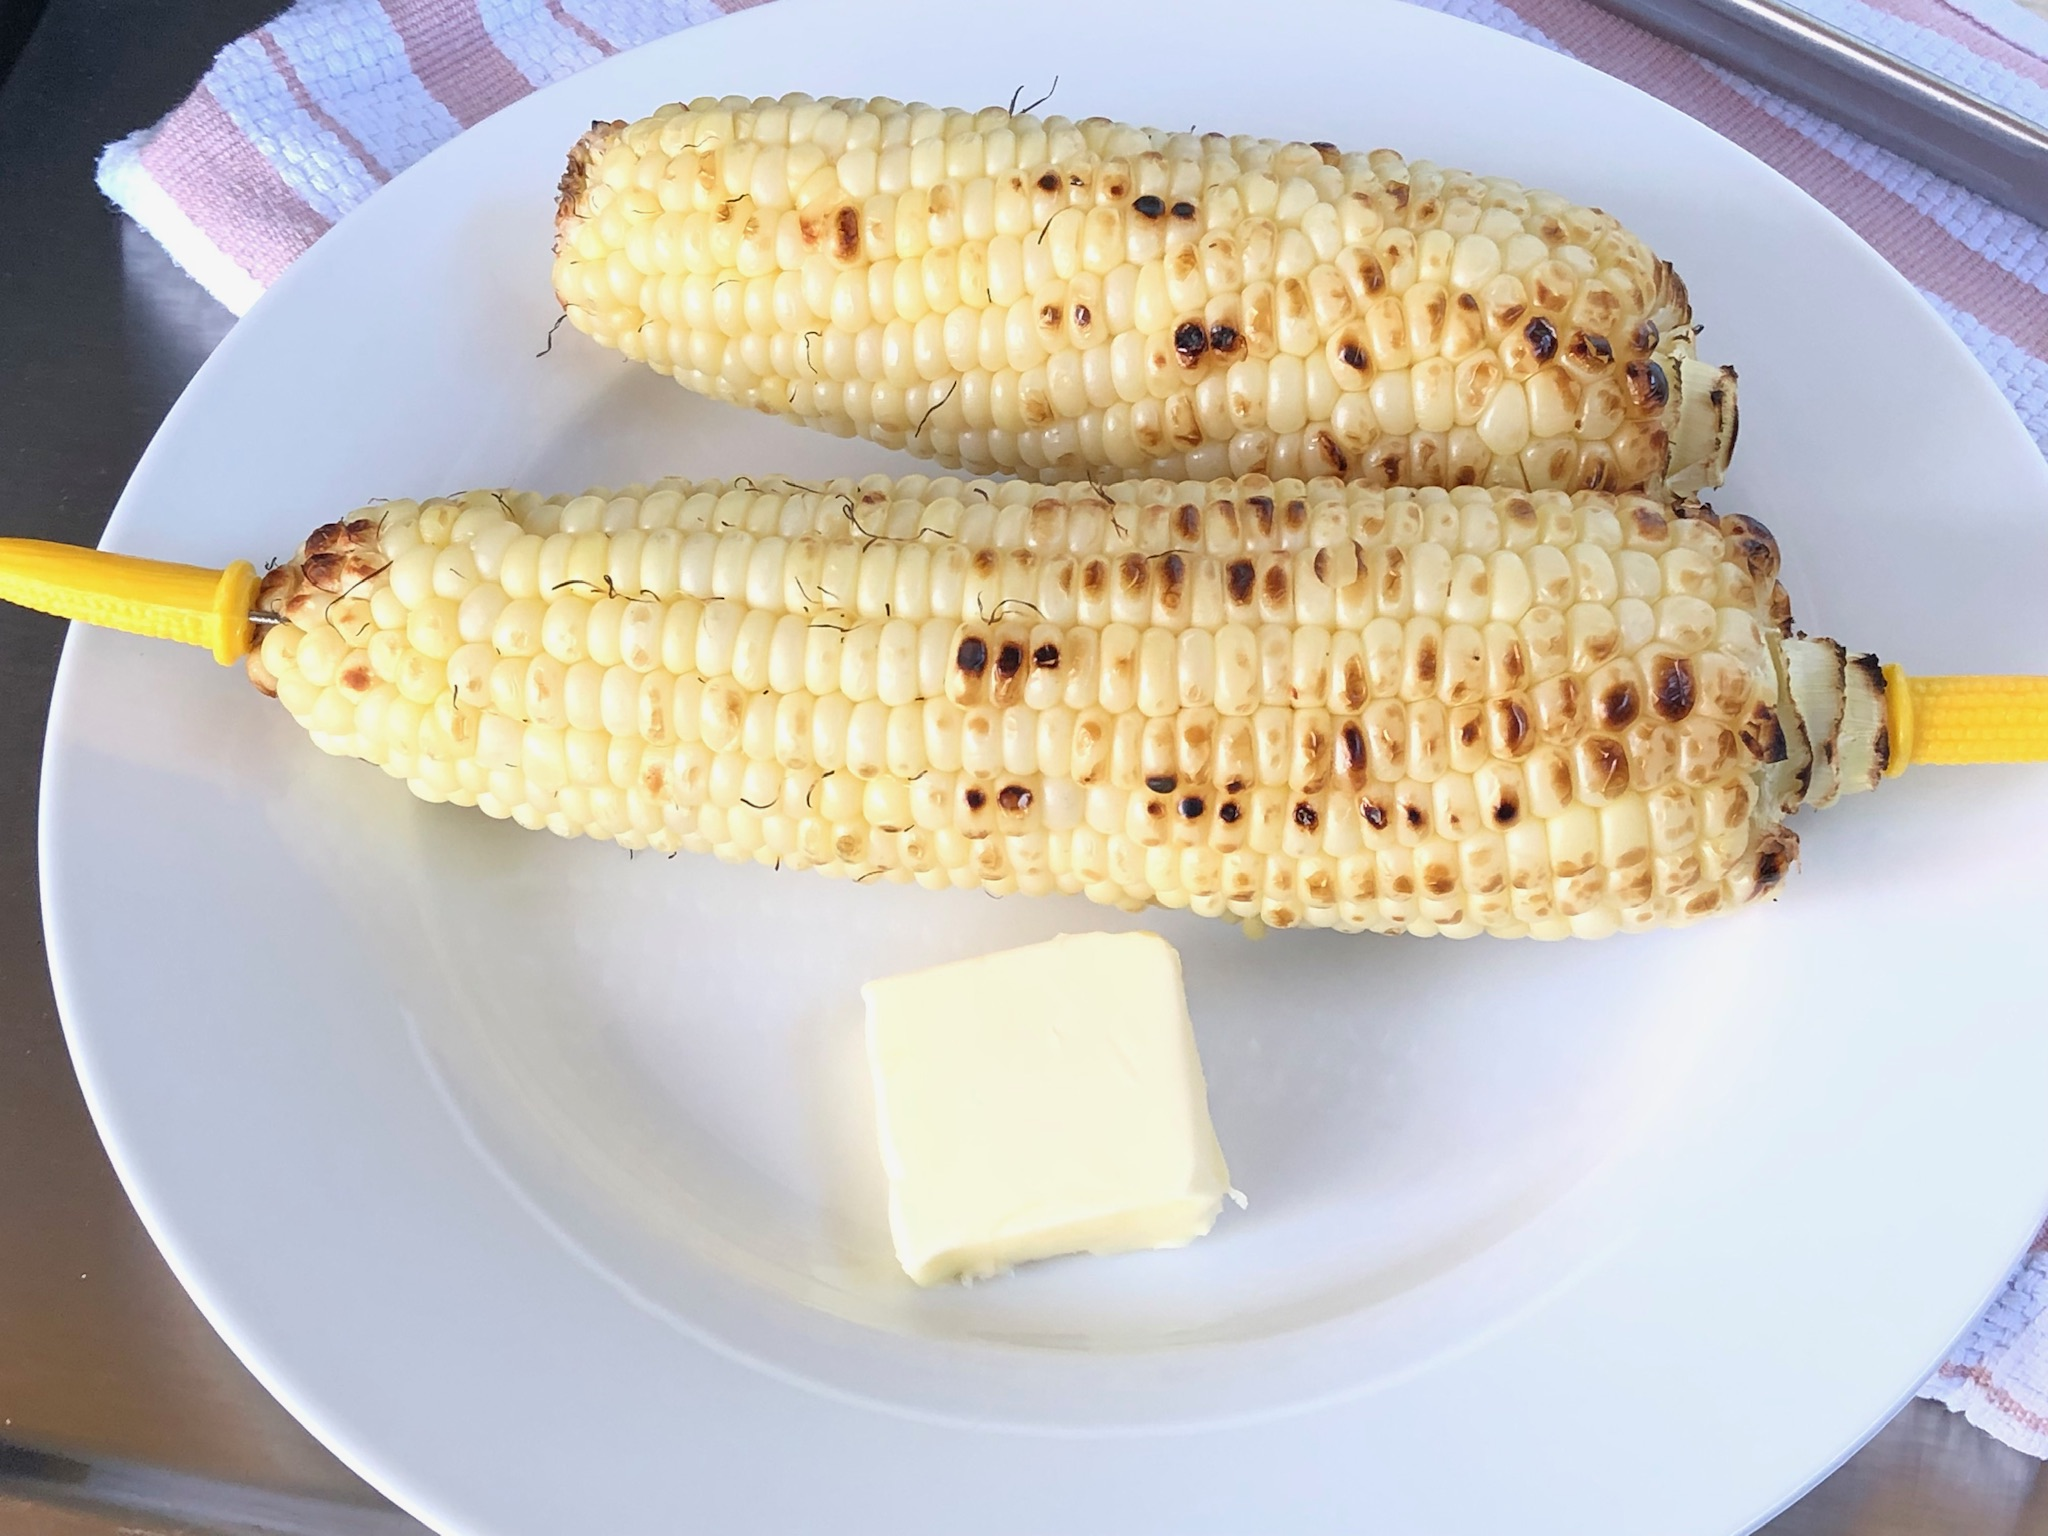 More grilled corn on the cob